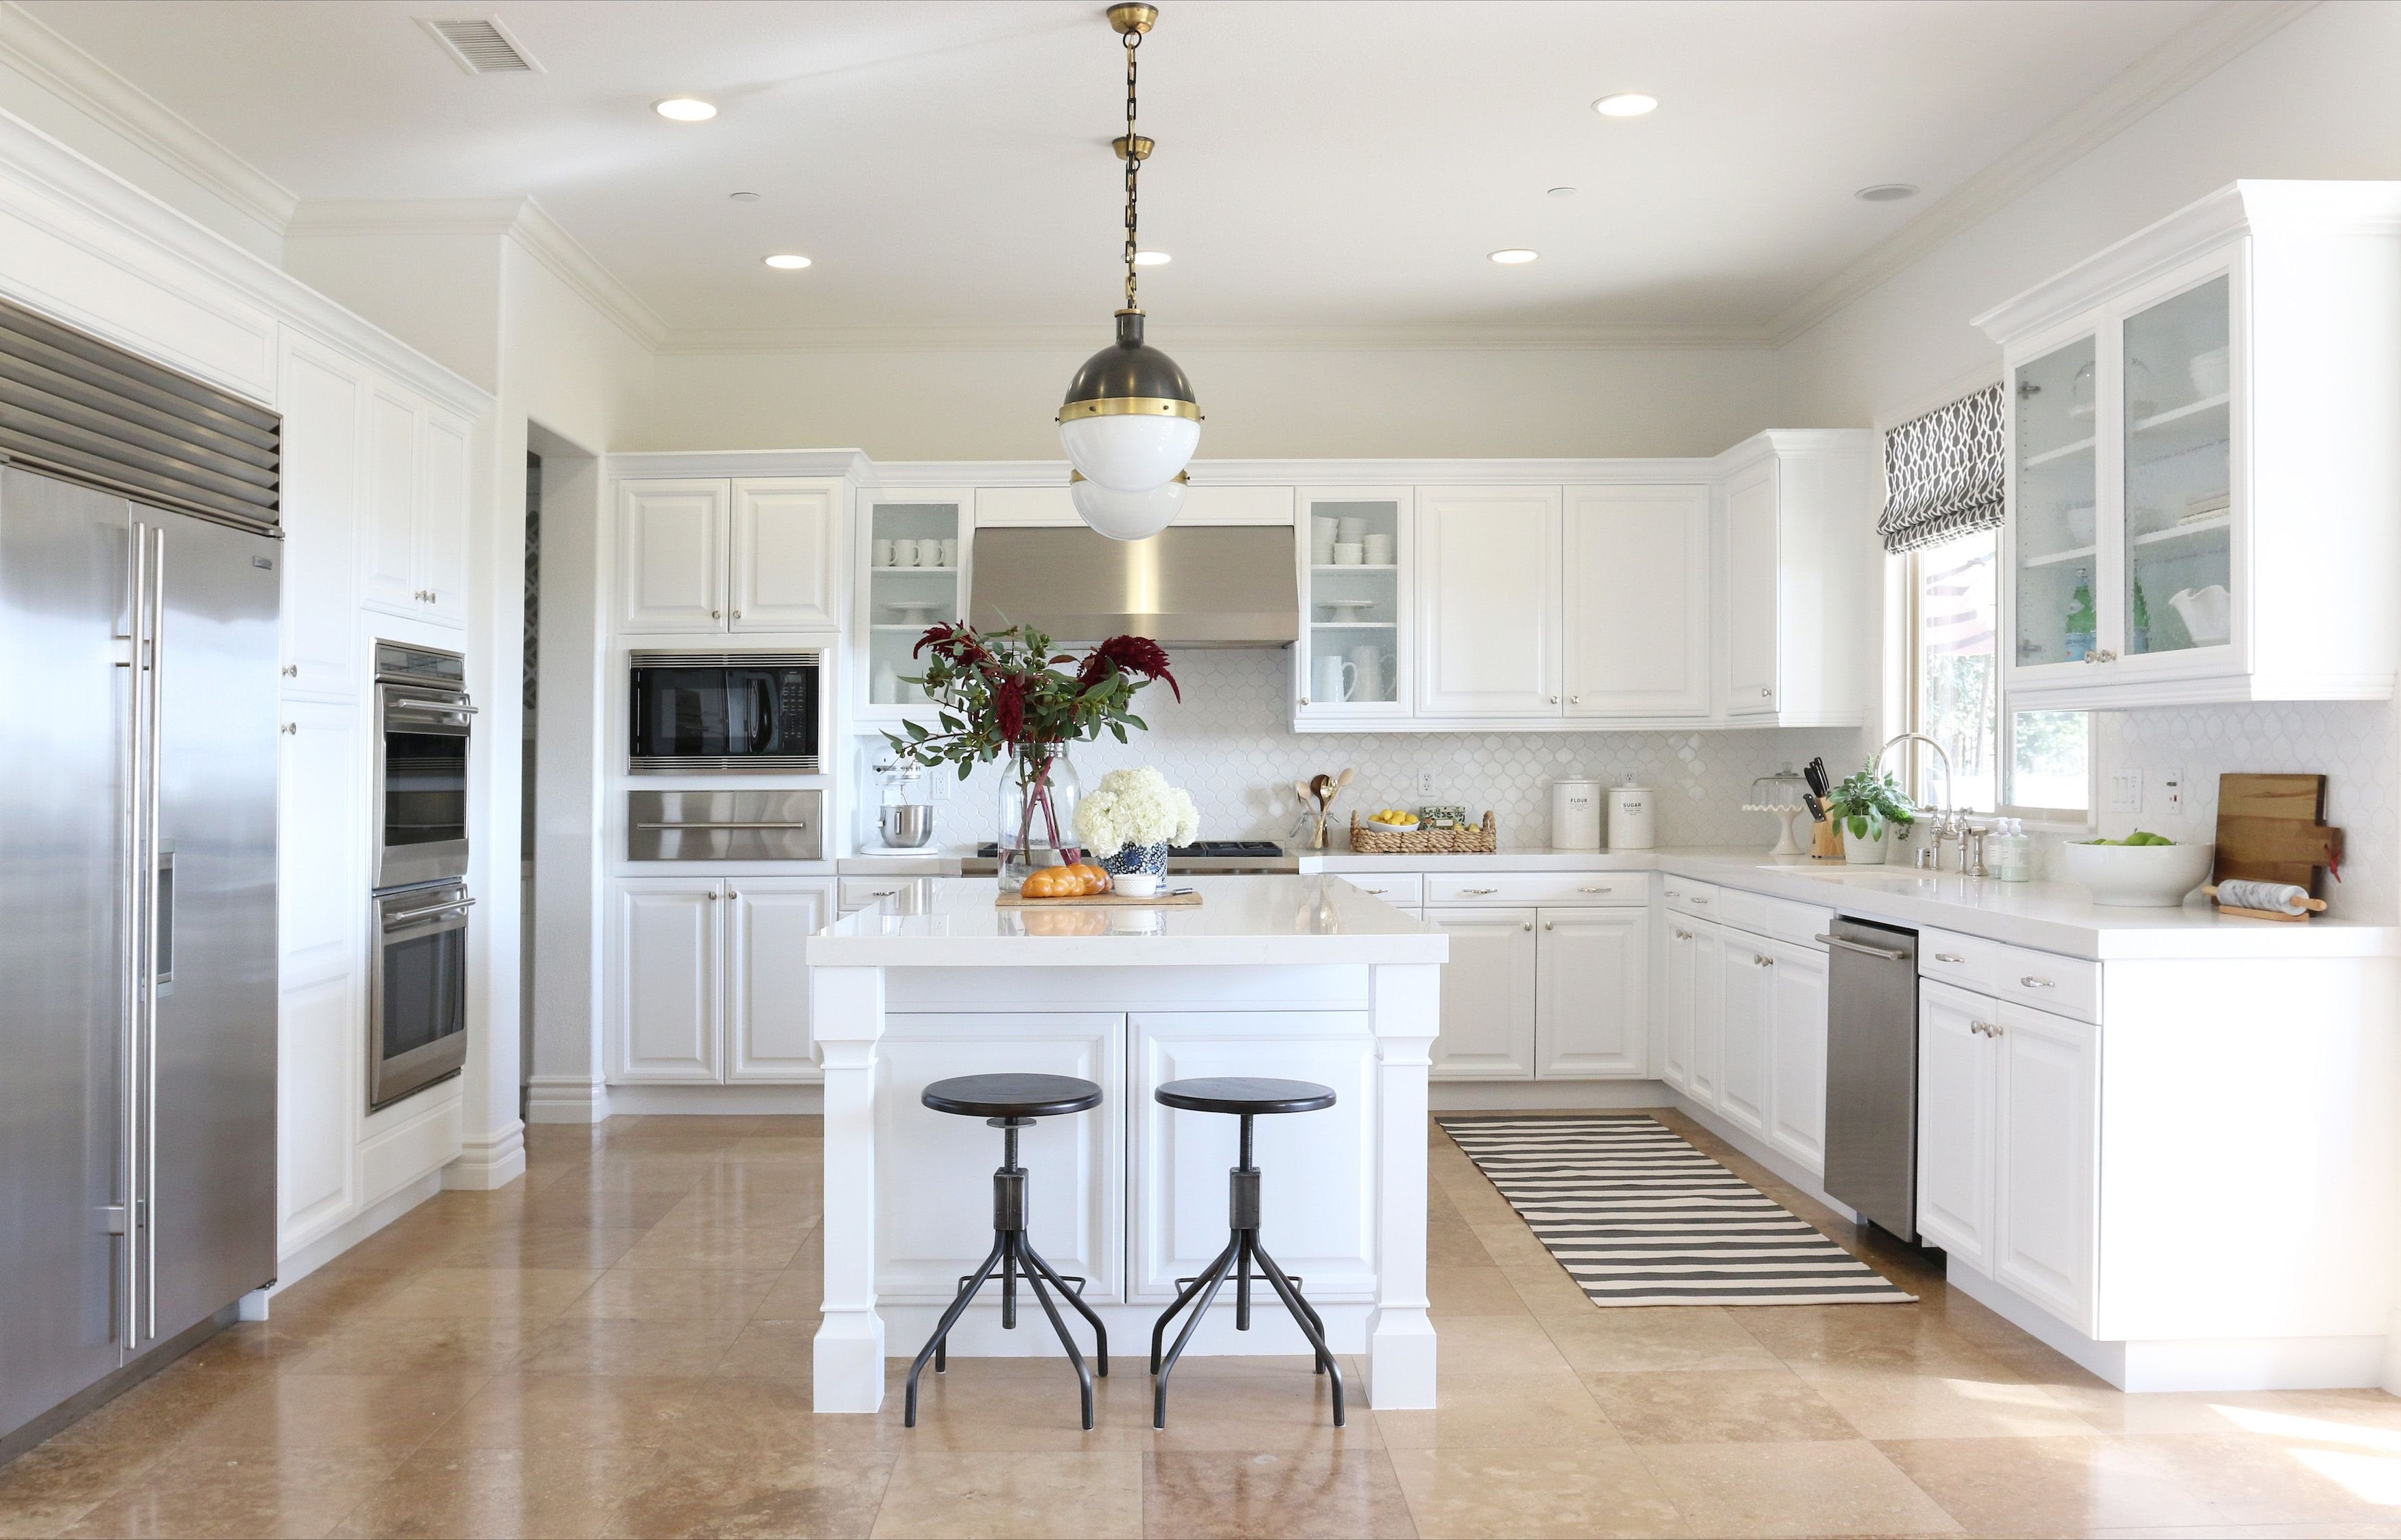 White Kitchen Remodel Before And After 11 times white kitchen cabinets transformed a space | kitchens